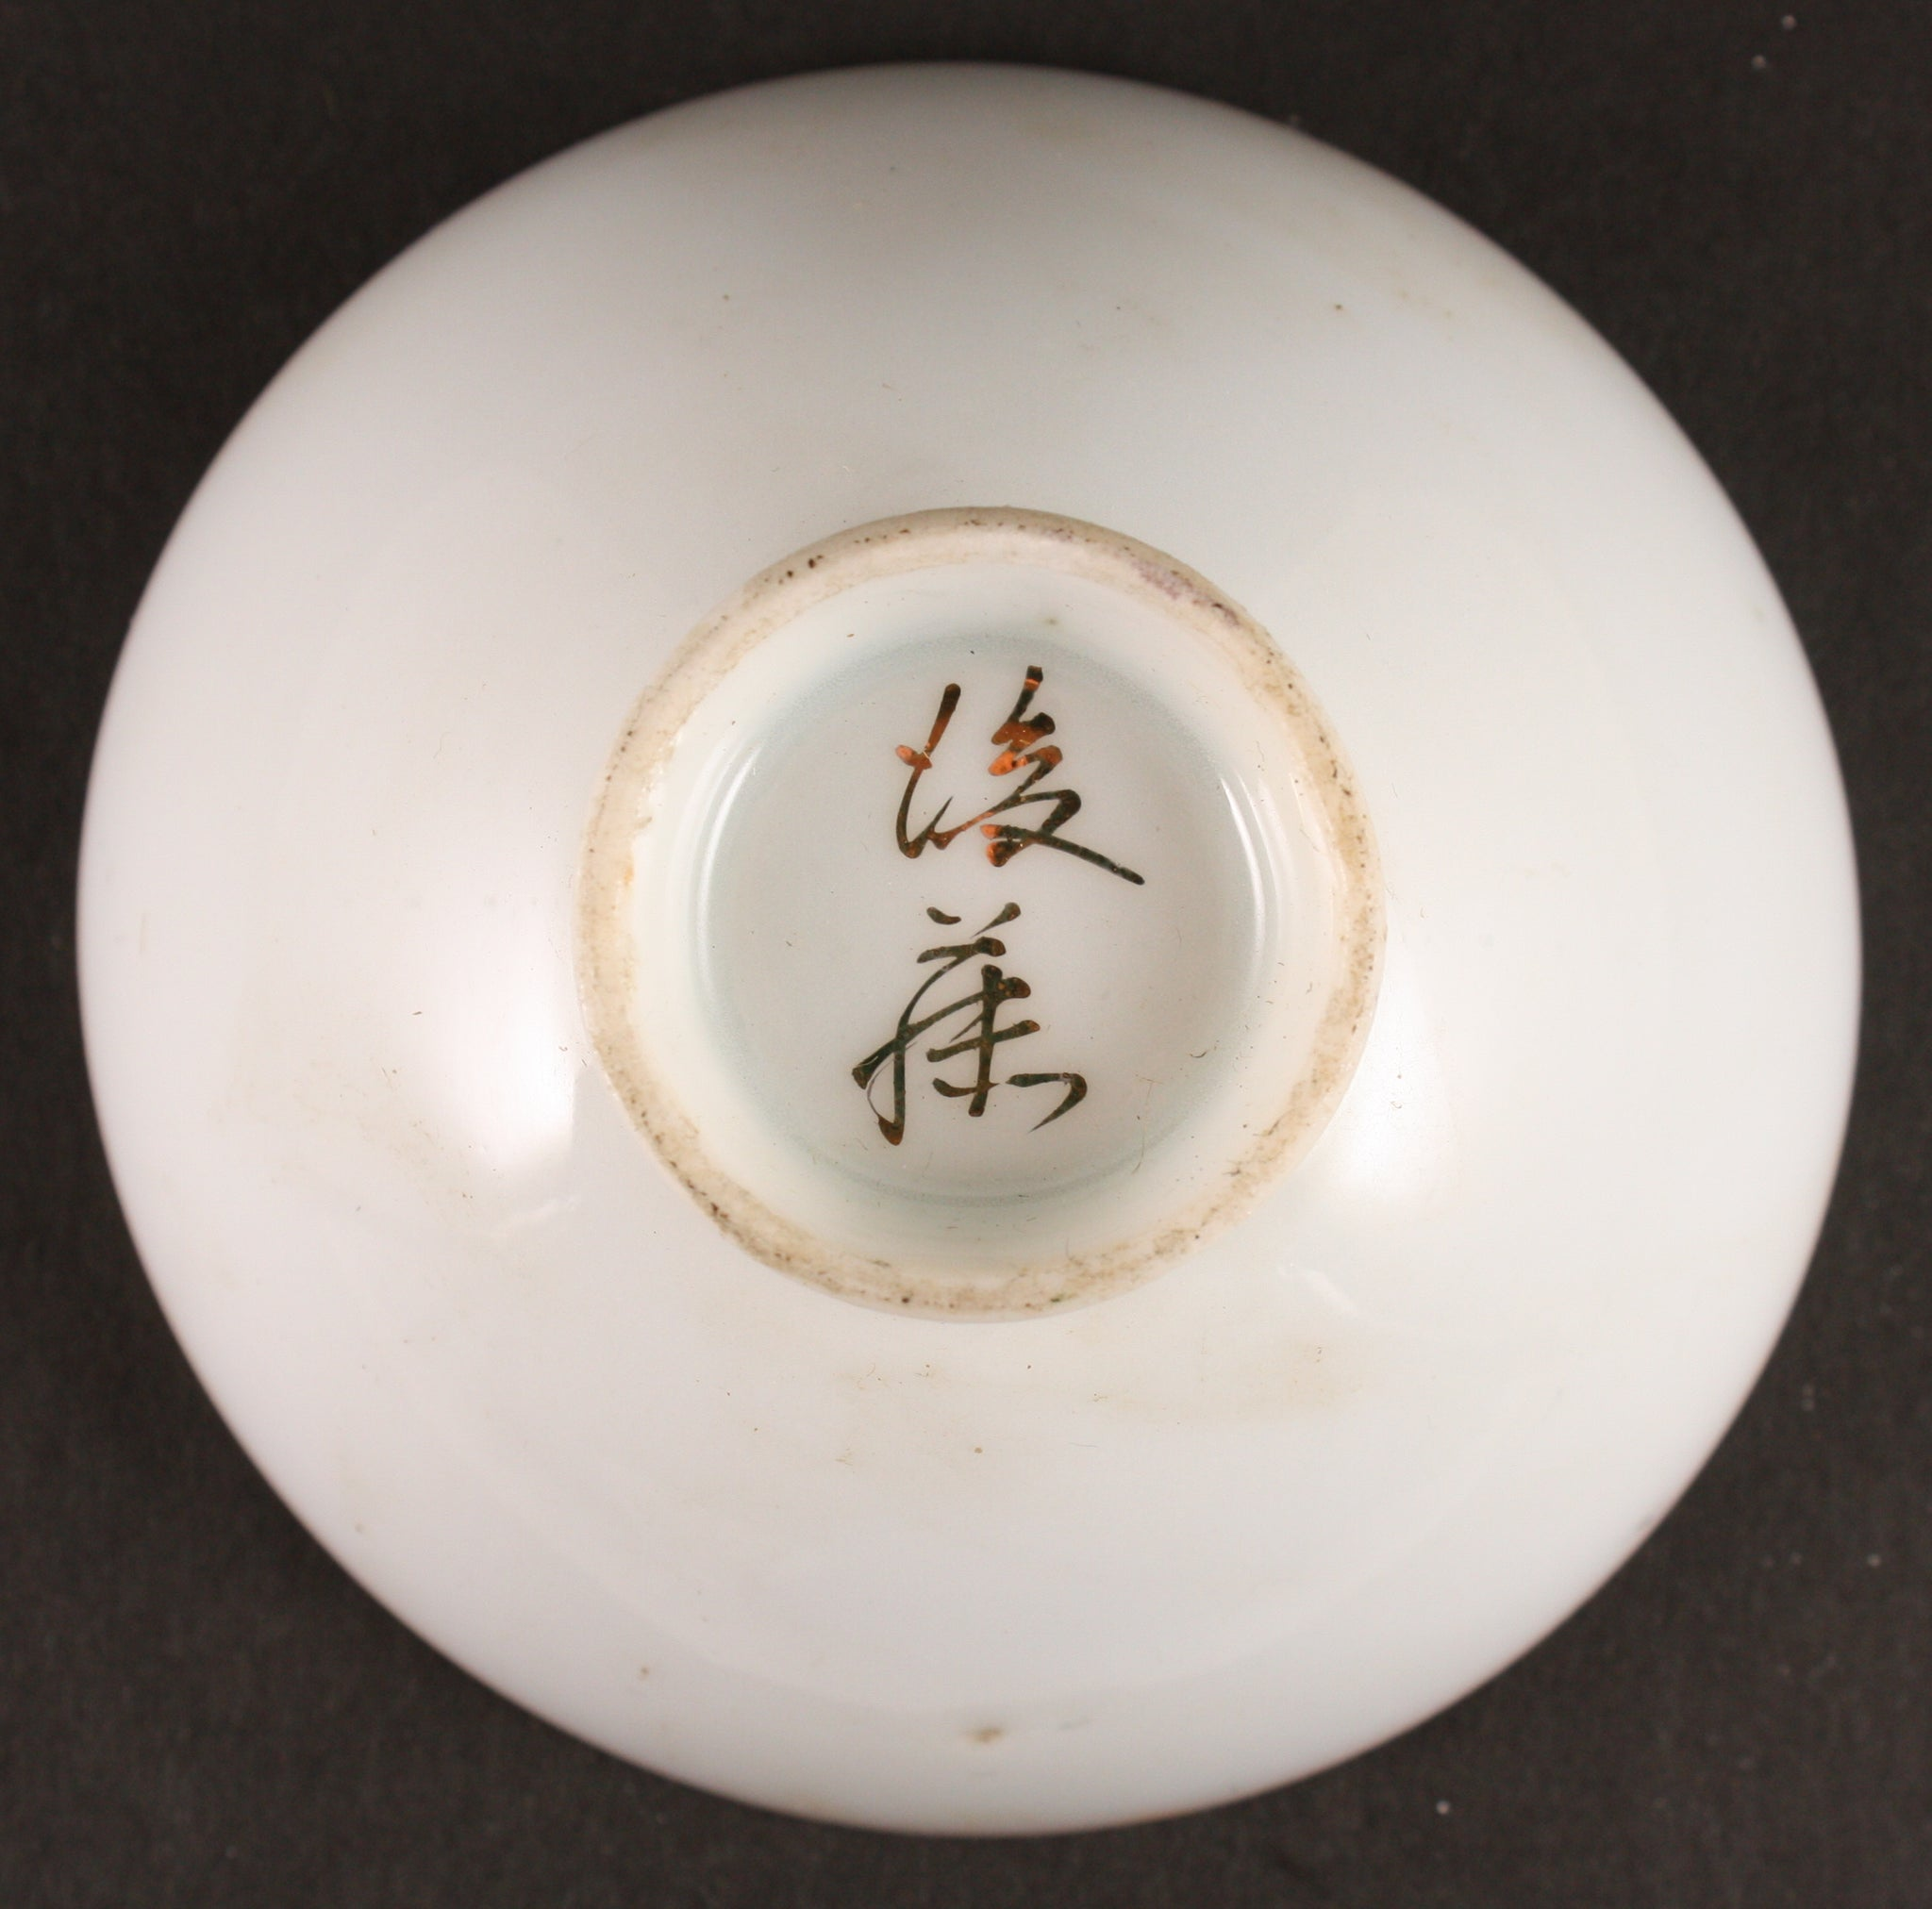 Antique Japanese Military Landscape Army Star Sake Cup